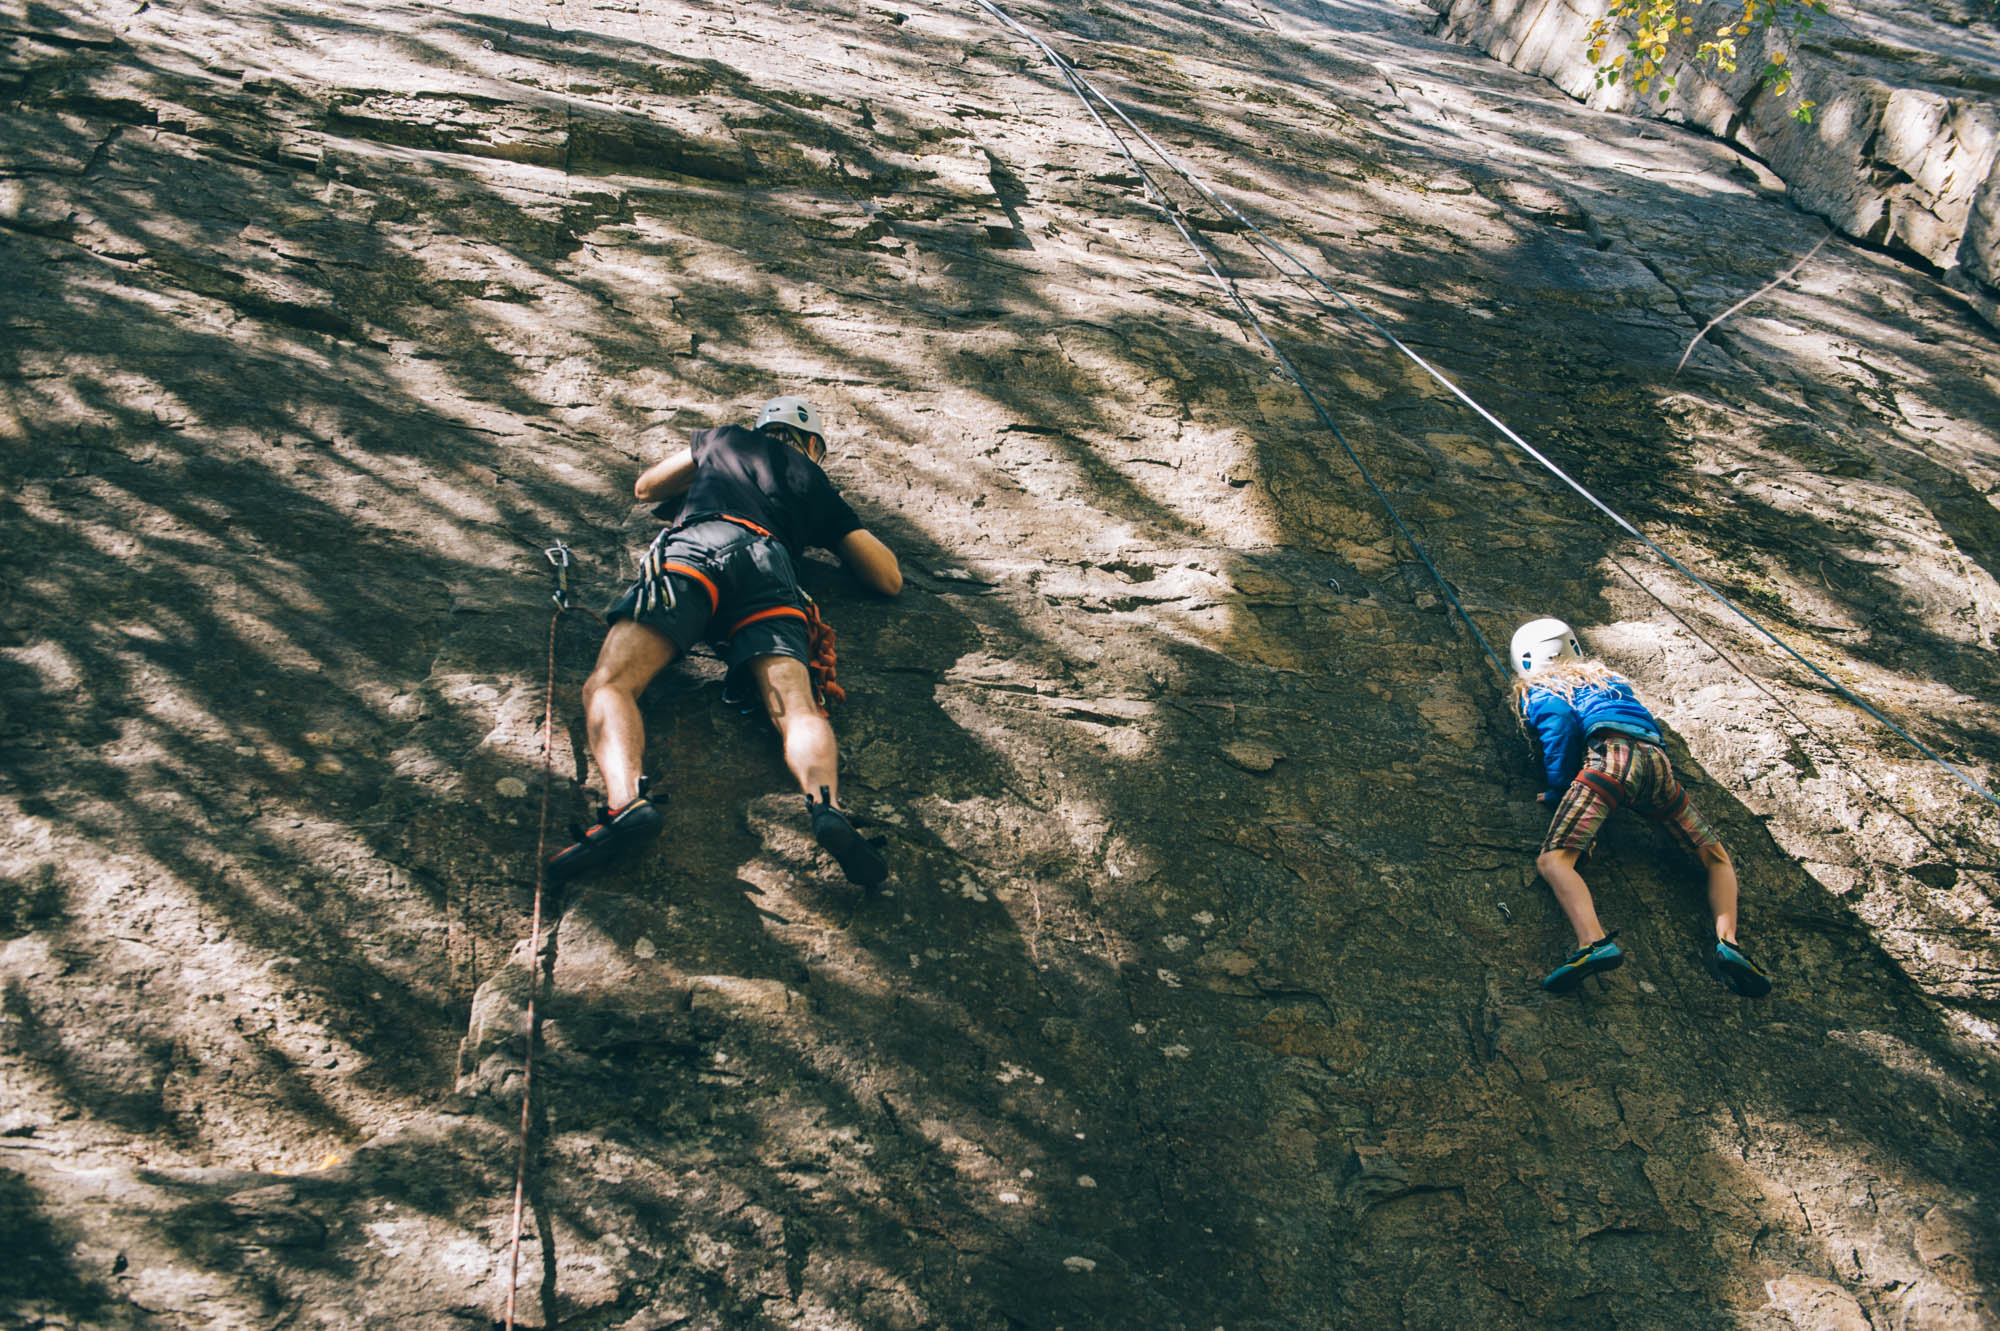 You can see here that Karl is lead climbing and Ellie is top roping (explanations below).